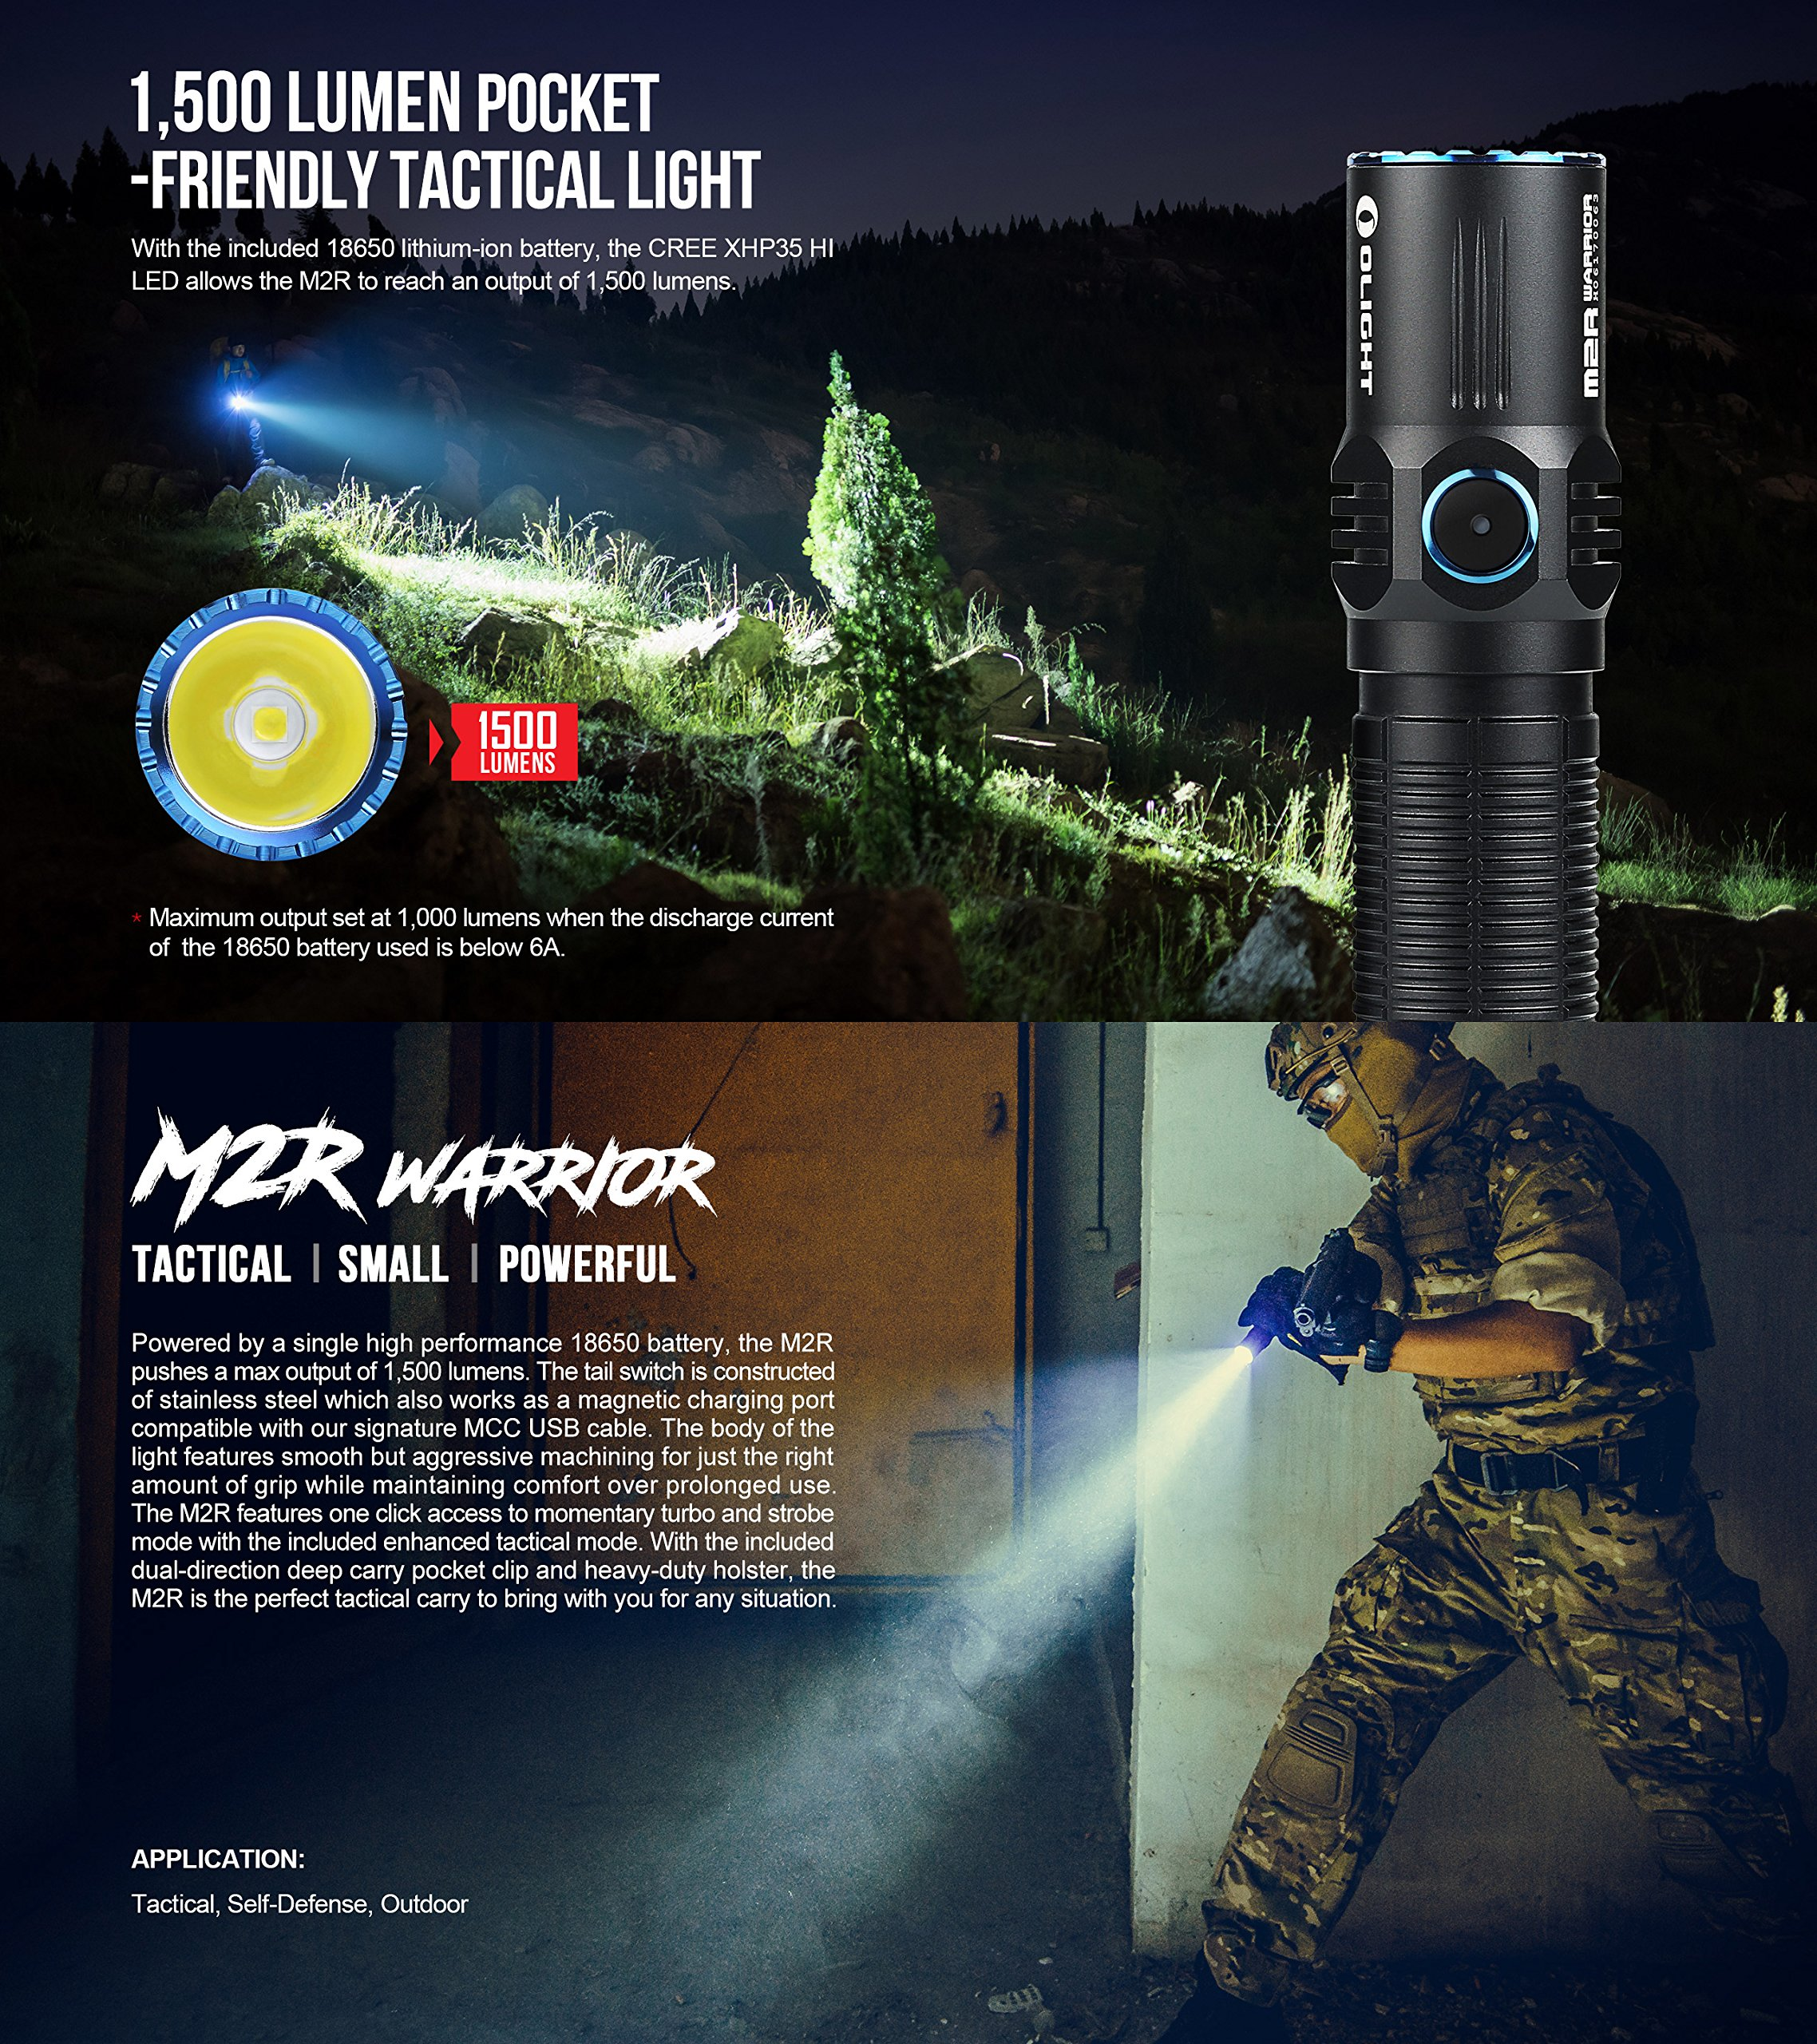 SKYBEN Olight M2R 1500 Lumen Cree XHP35 HD LED USB Magnetic Rechargeable Dual switches Tactical Flashlight,with Magnetic Charging Cable,Customized 18650 Battery Accessory (Cool White) by SKYBEN (Image #3)